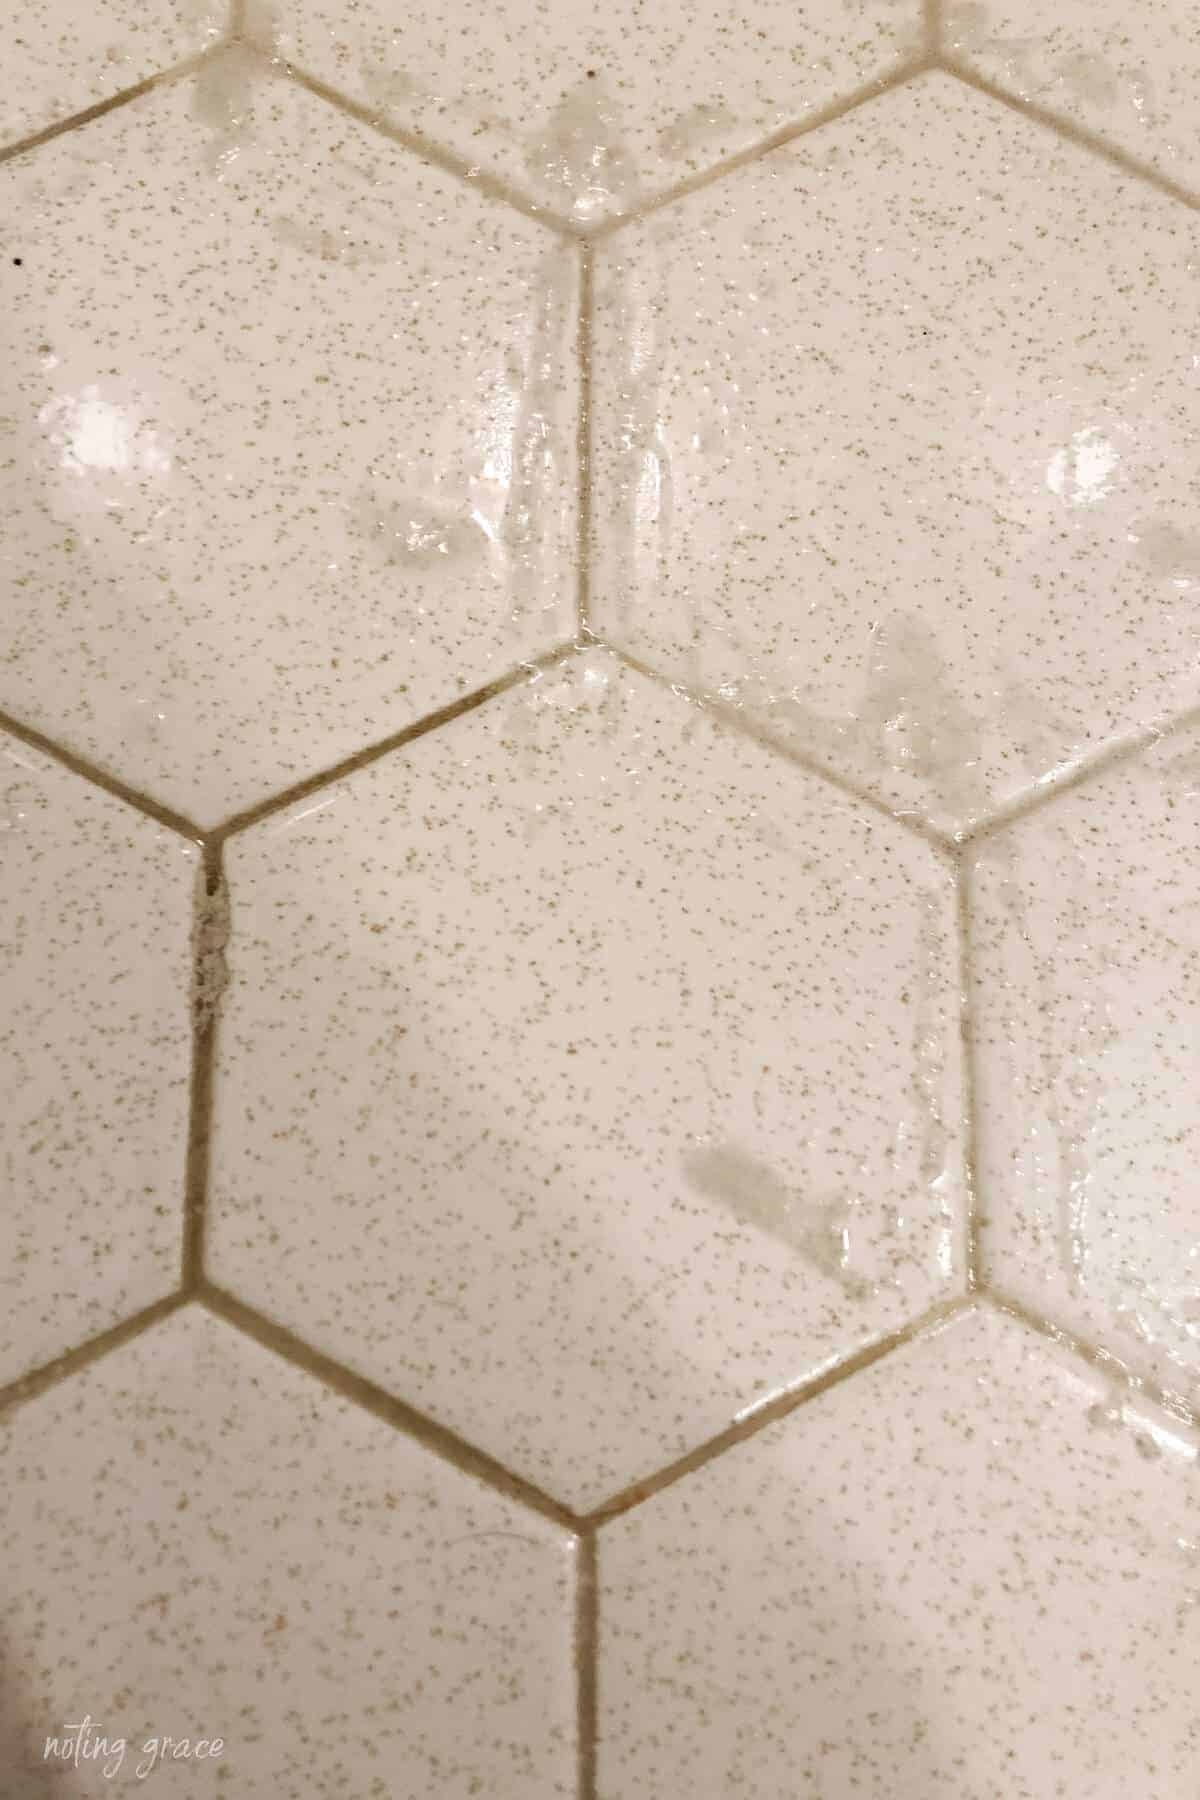 Close up of cleaning floor grout